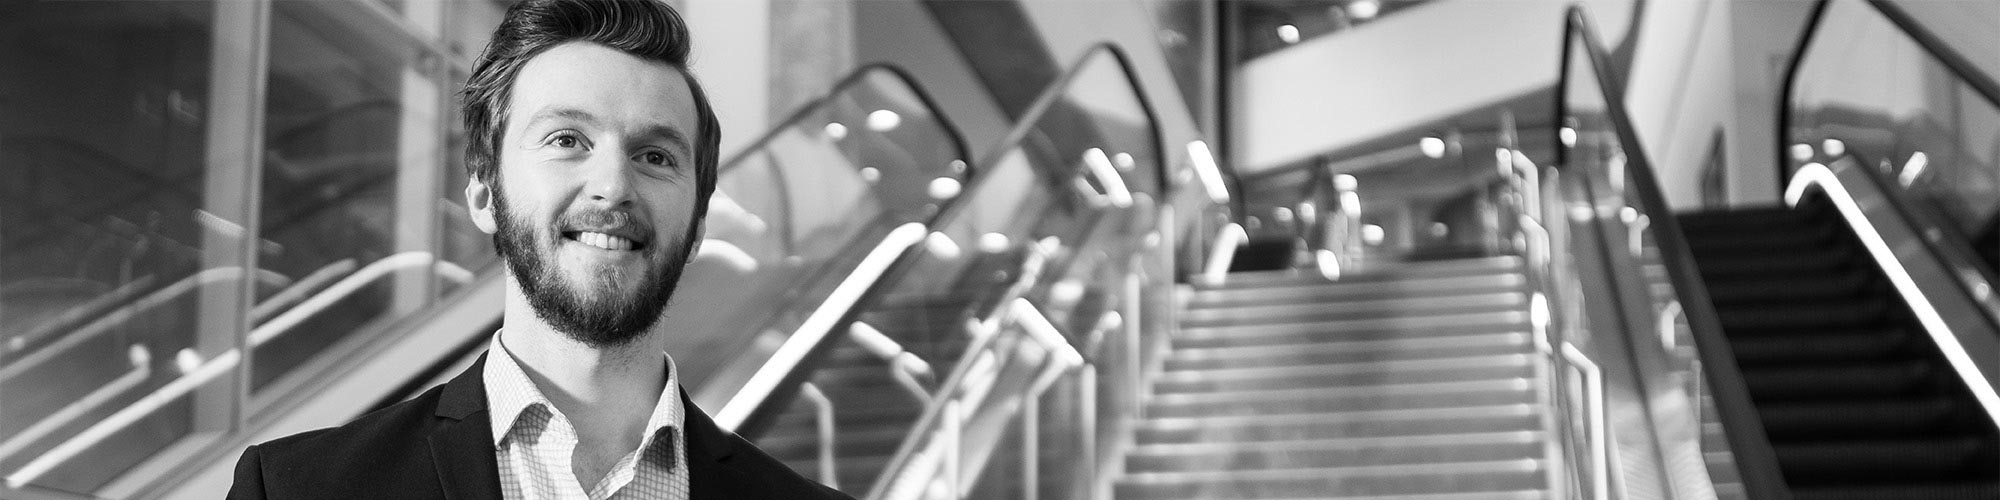 A greyscale image of a man in a suit standing inside a building lobby with escalators behind him.